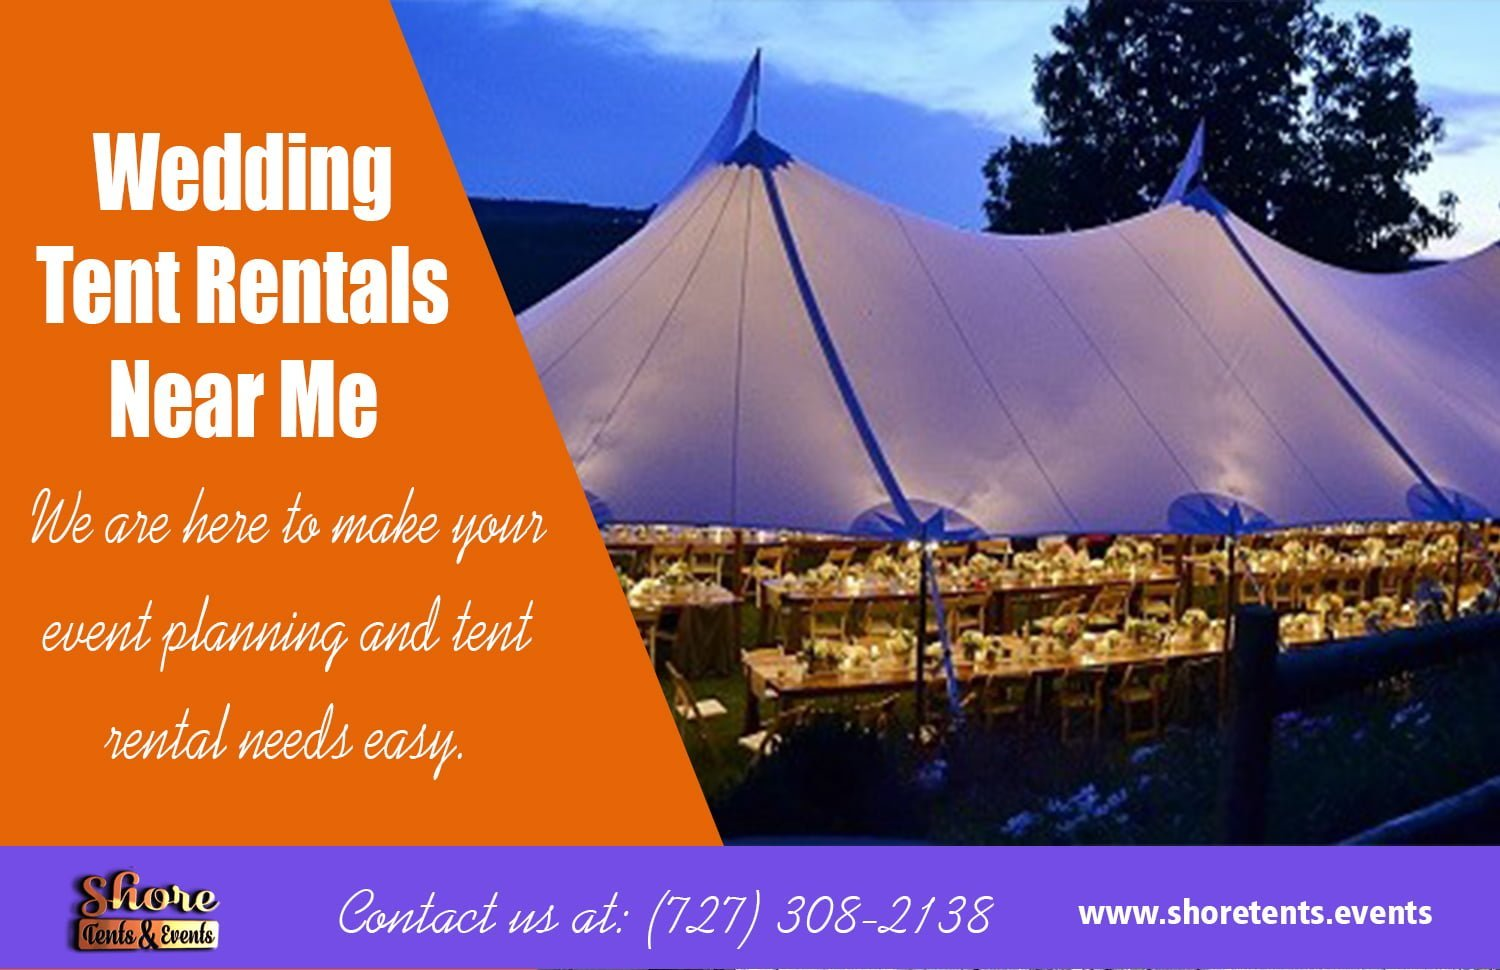 Wedding Tent Rental Prices Near Clearwater Tampa Florida